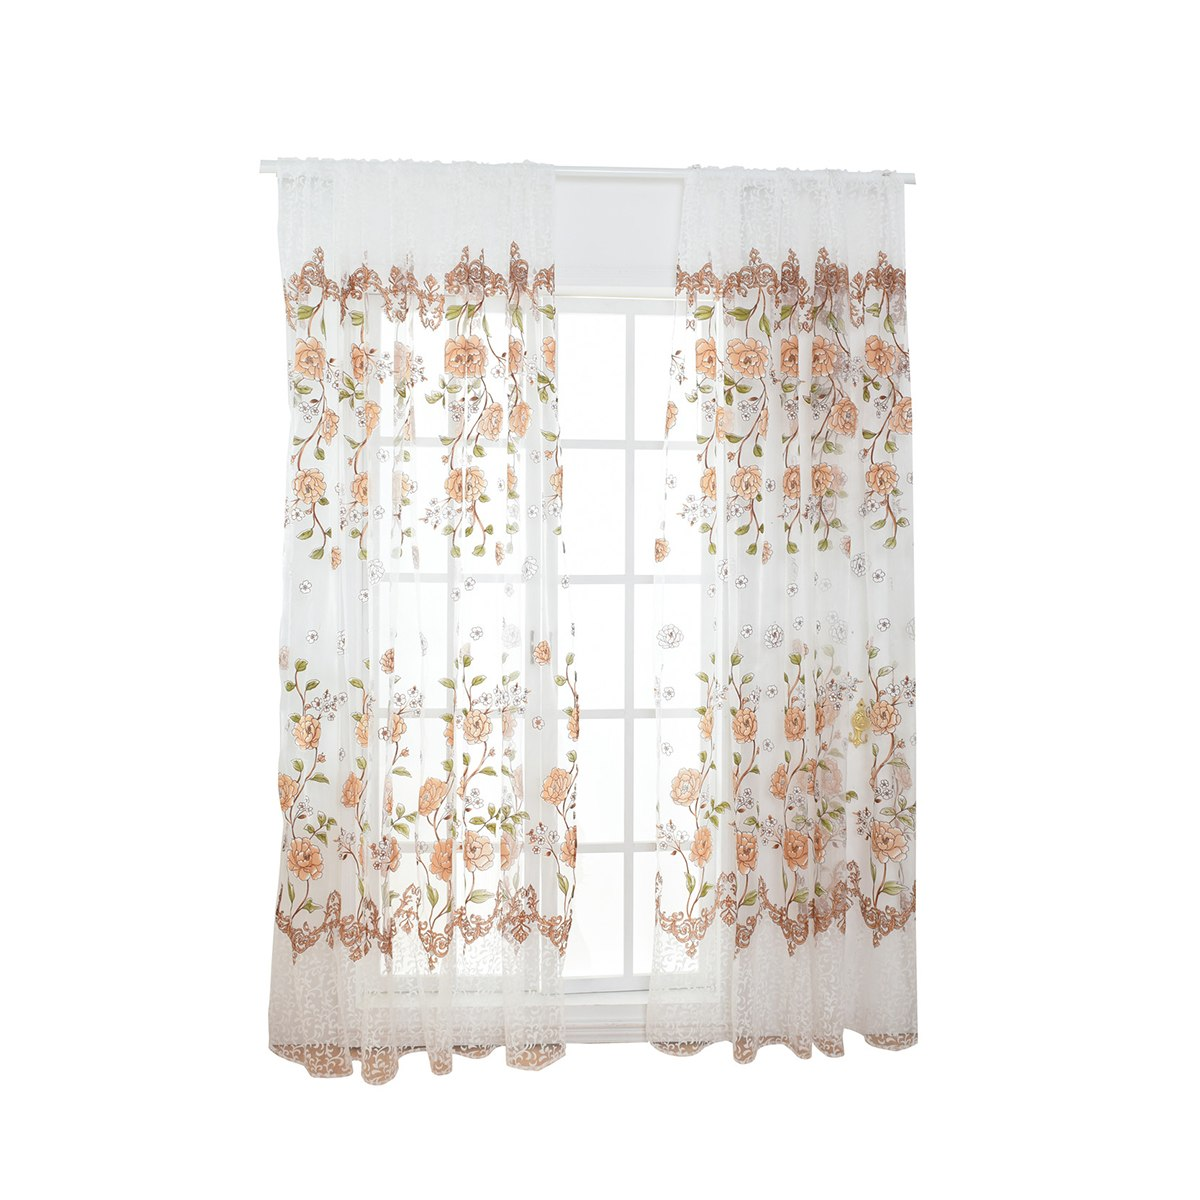 Costbuys  Sheer Floral Curtains Home Decor Window Treatments Modern Curtain Pour Le Salon Window - Yellow